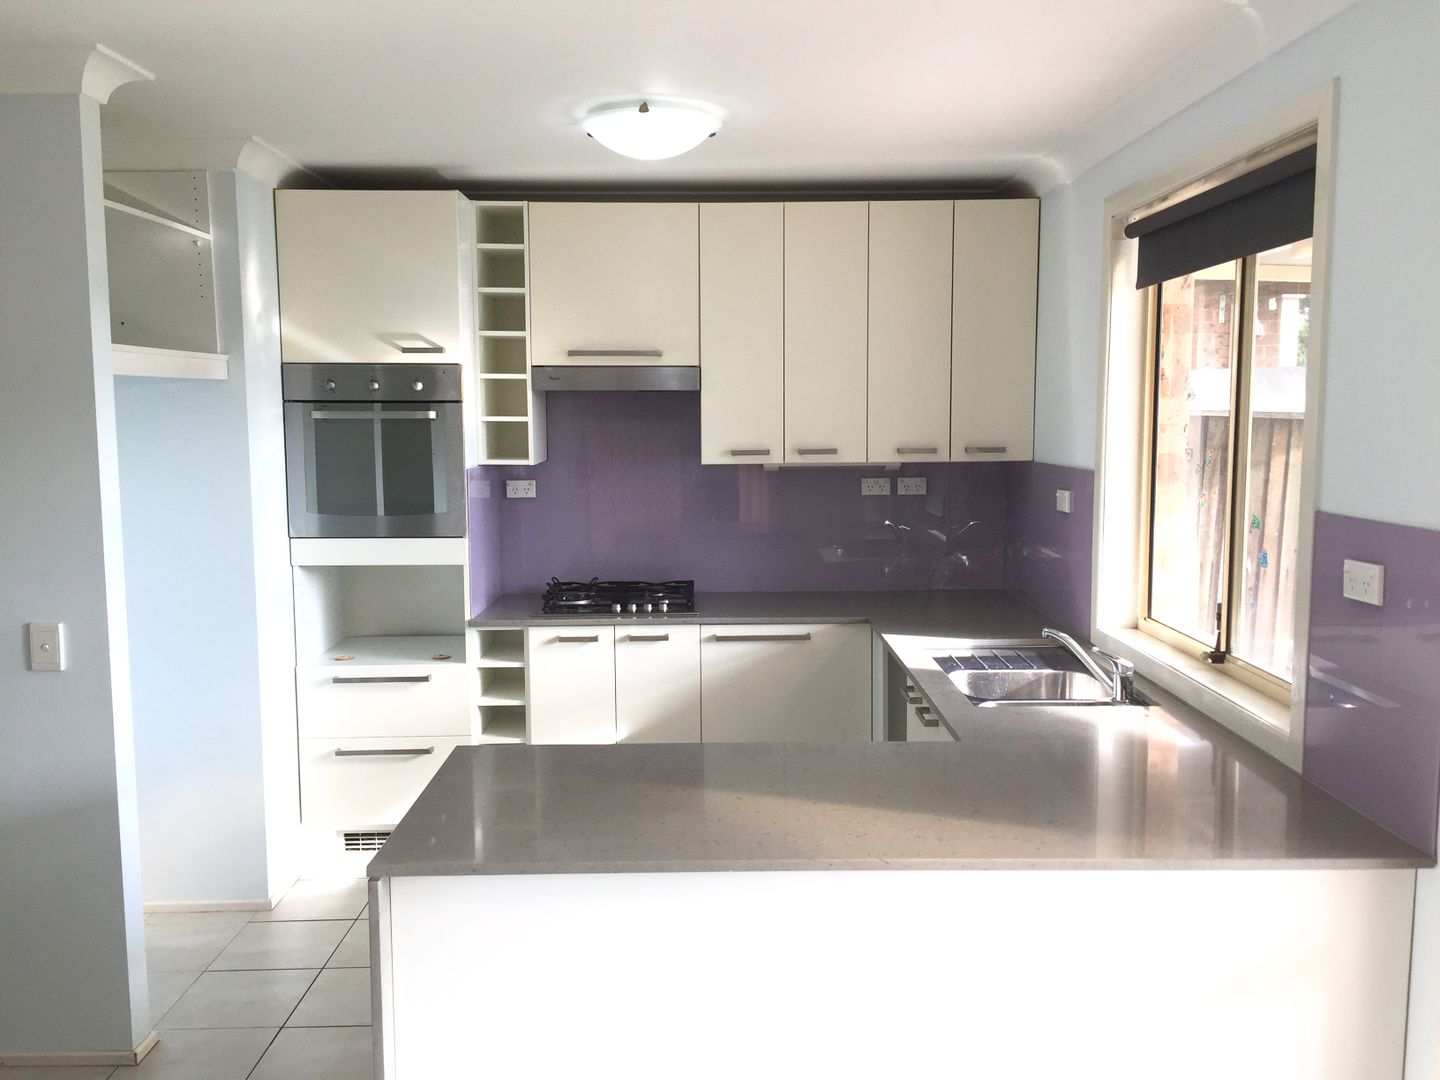 71 Manorhouse Blvd, Quakers Hill NSW 2763, Image 1